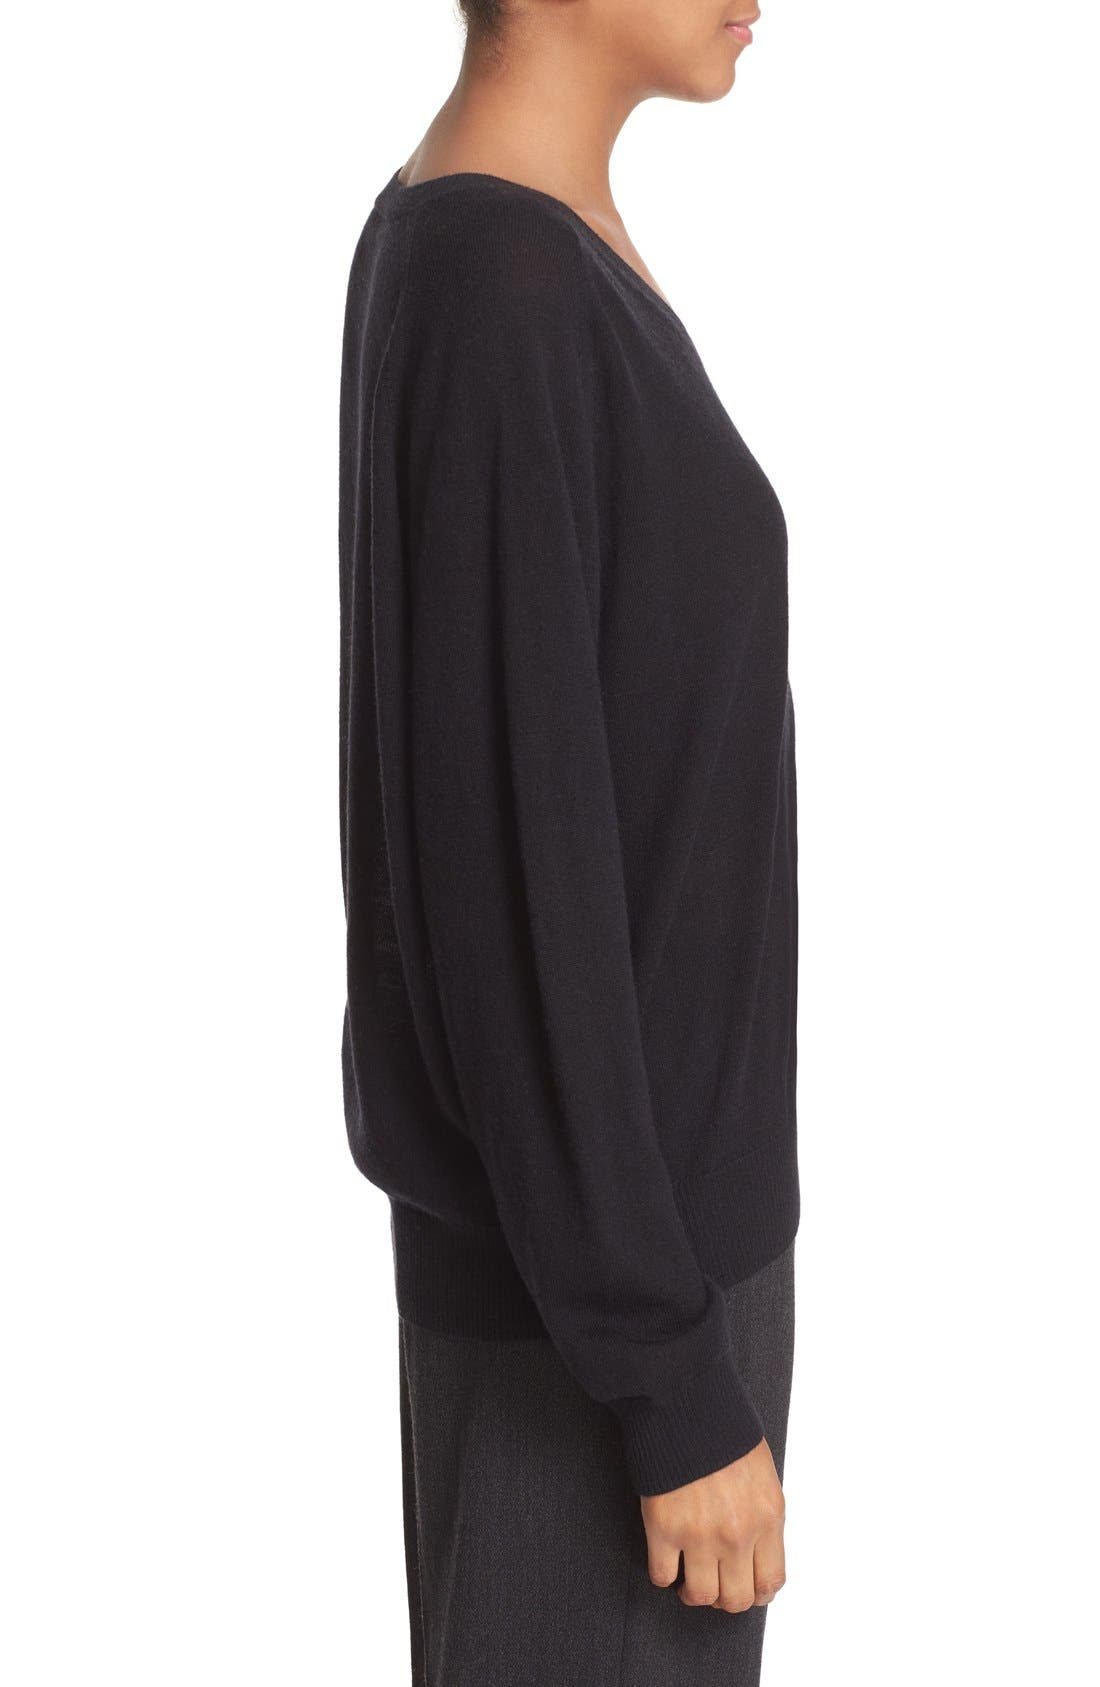 VINCE, Relaxed Cashmere V-Neck Sweater, Alternate thumbnail 5, color, 001